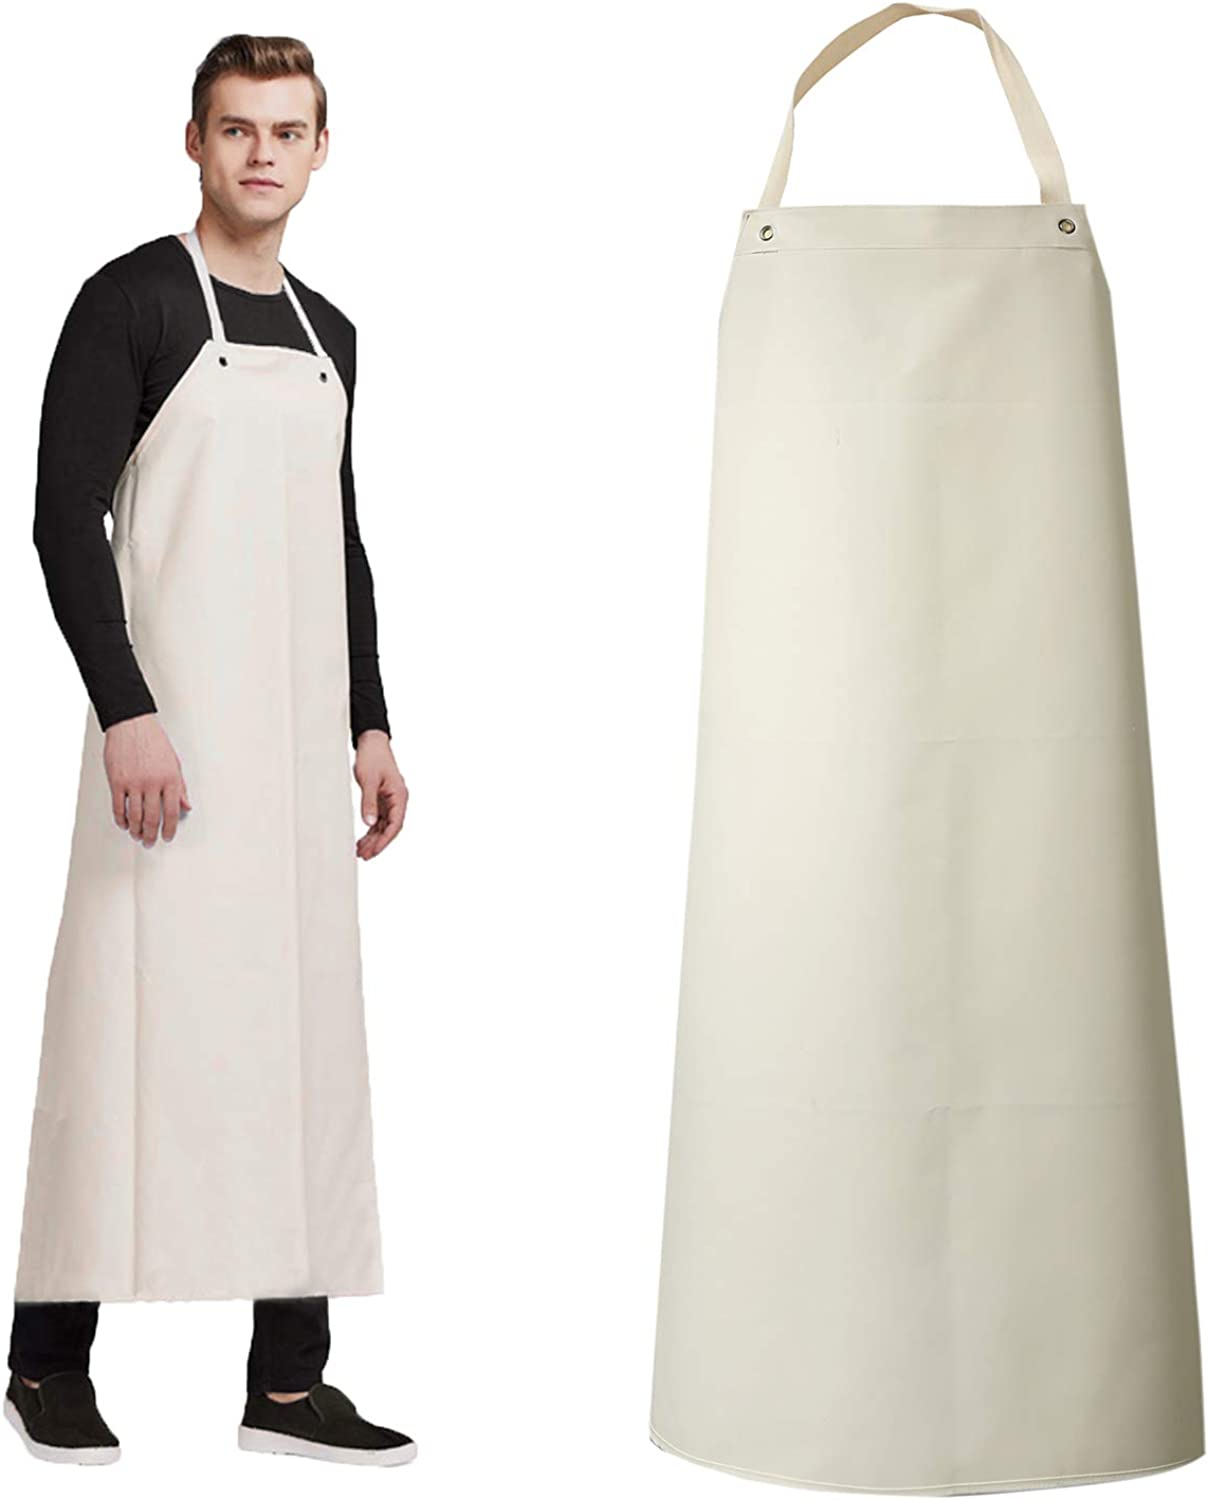 Rubber Waterproof Apron Butcher Heavy Duty -Oil Chemical Resistant Thick Work Safety Aprons - Dog Grooming, DishWashing (White, XL): Clothing